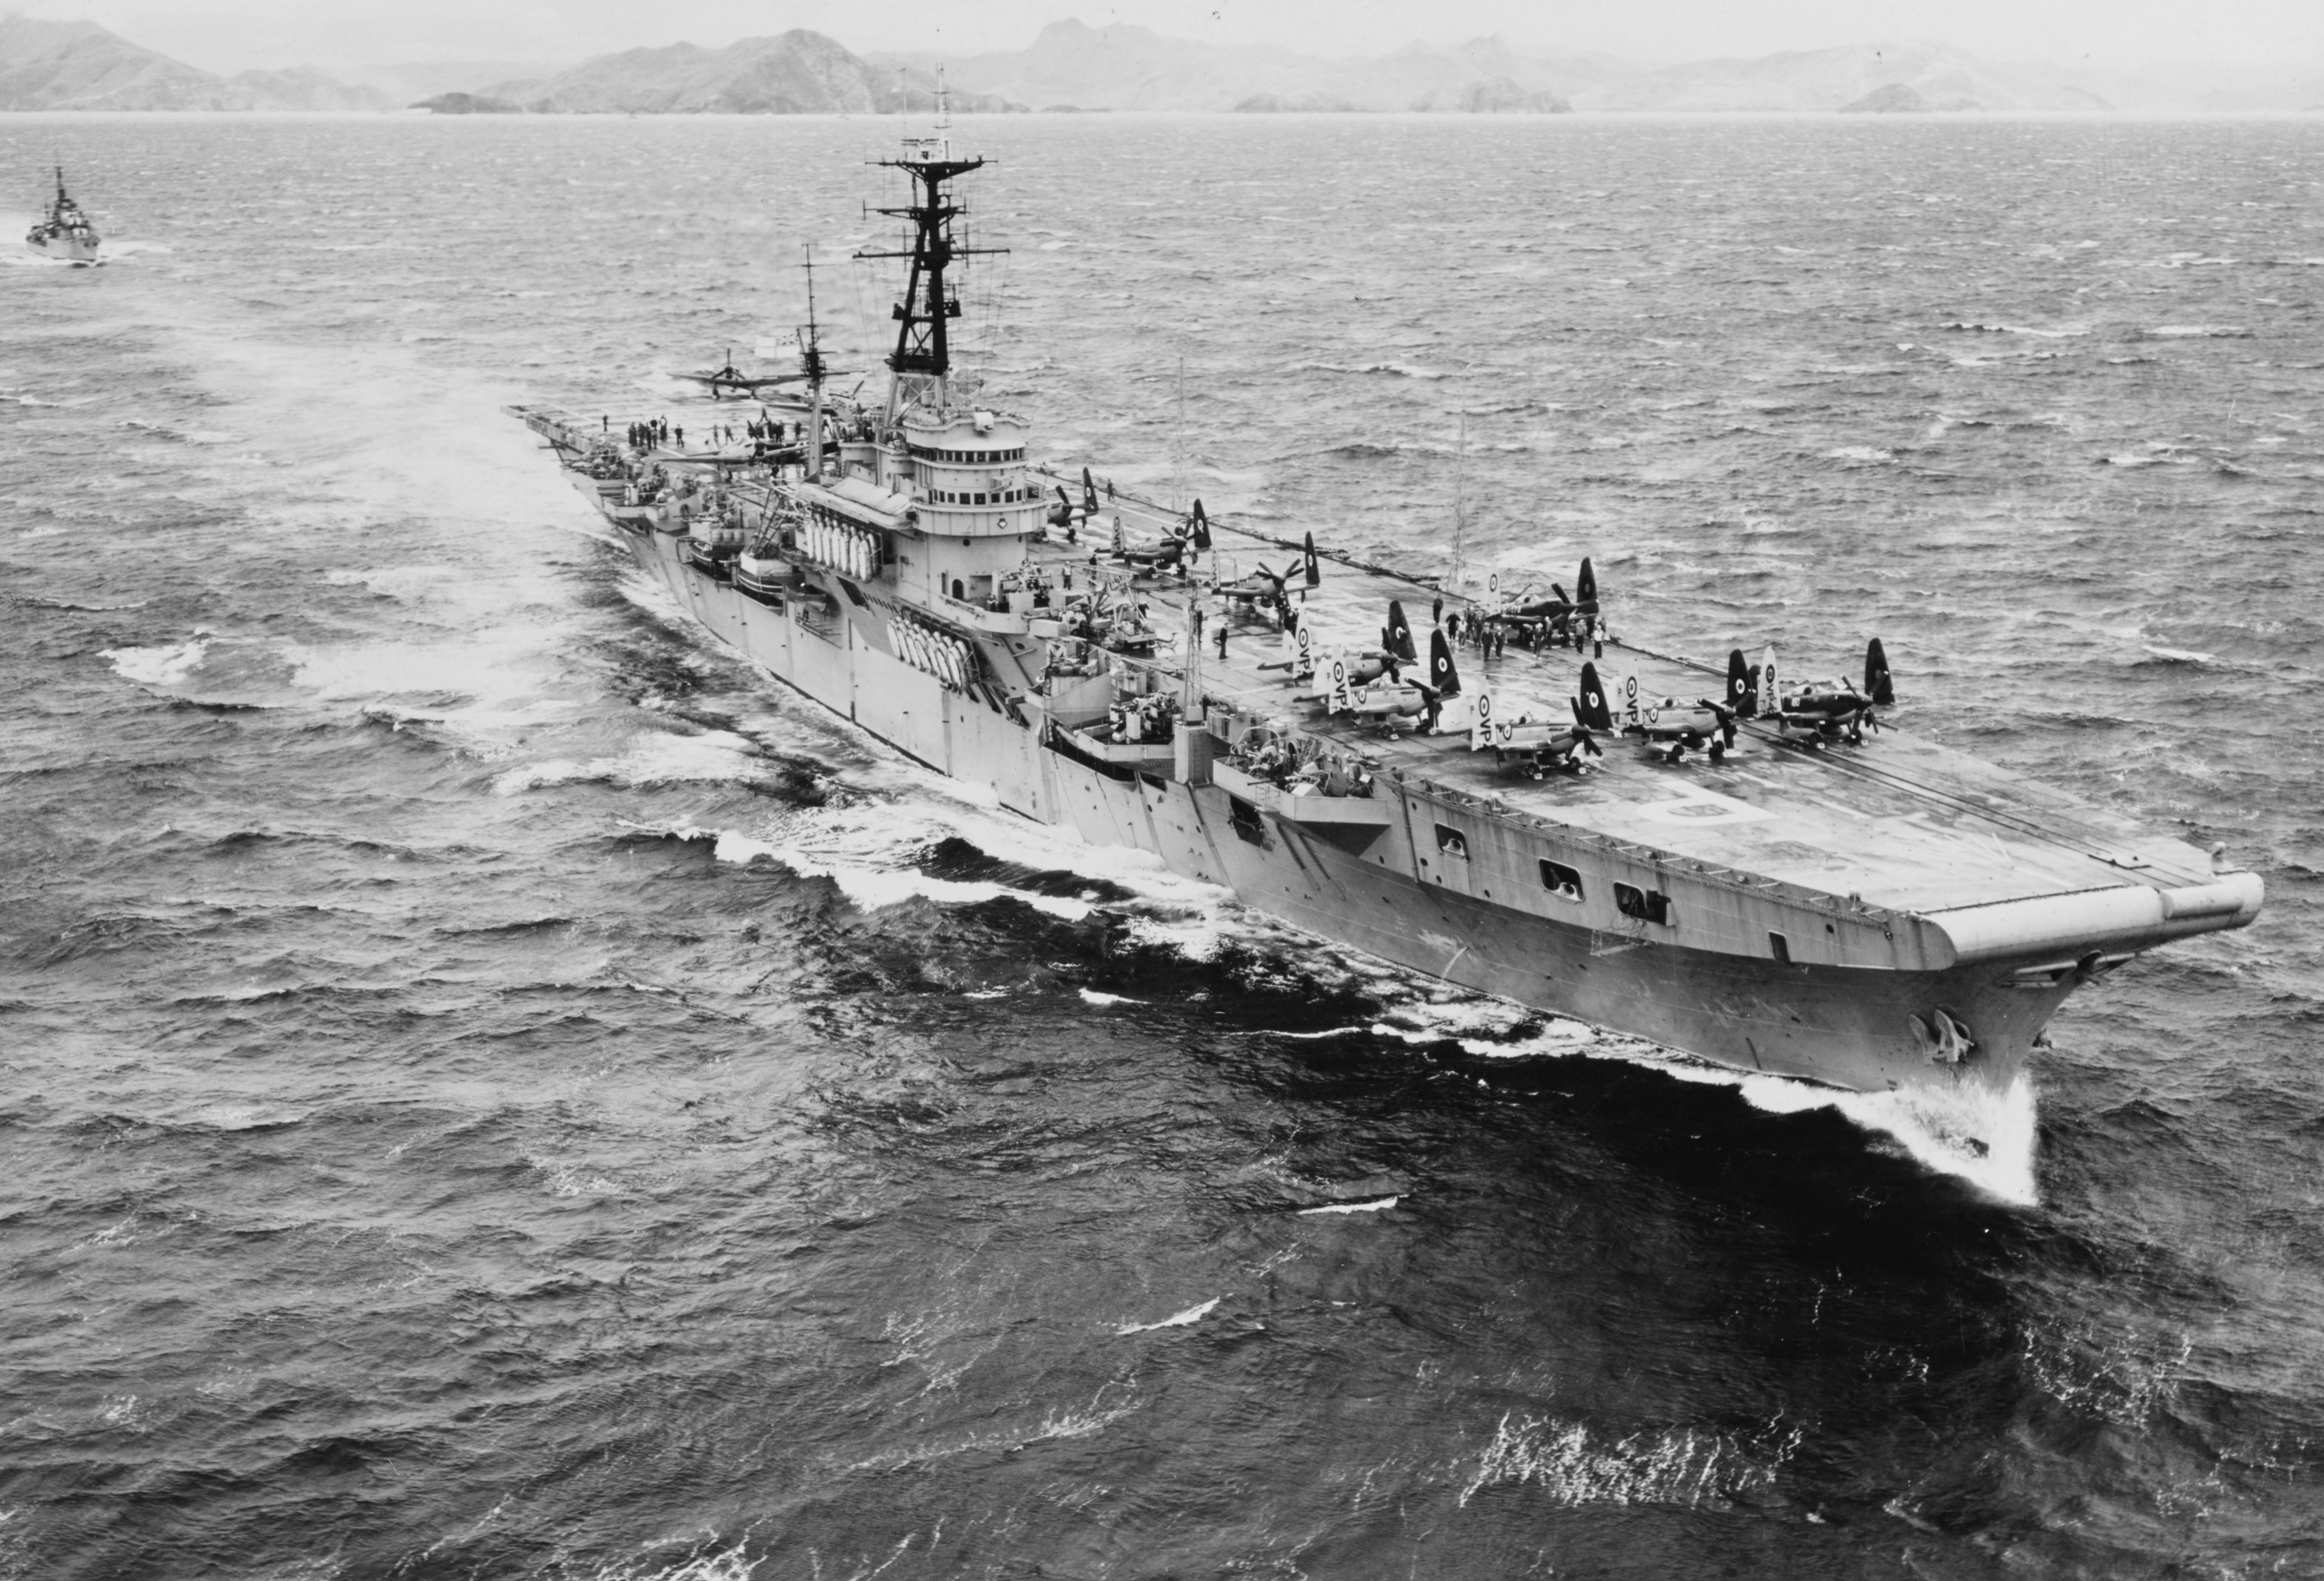 HMS TRIUMPH at sea